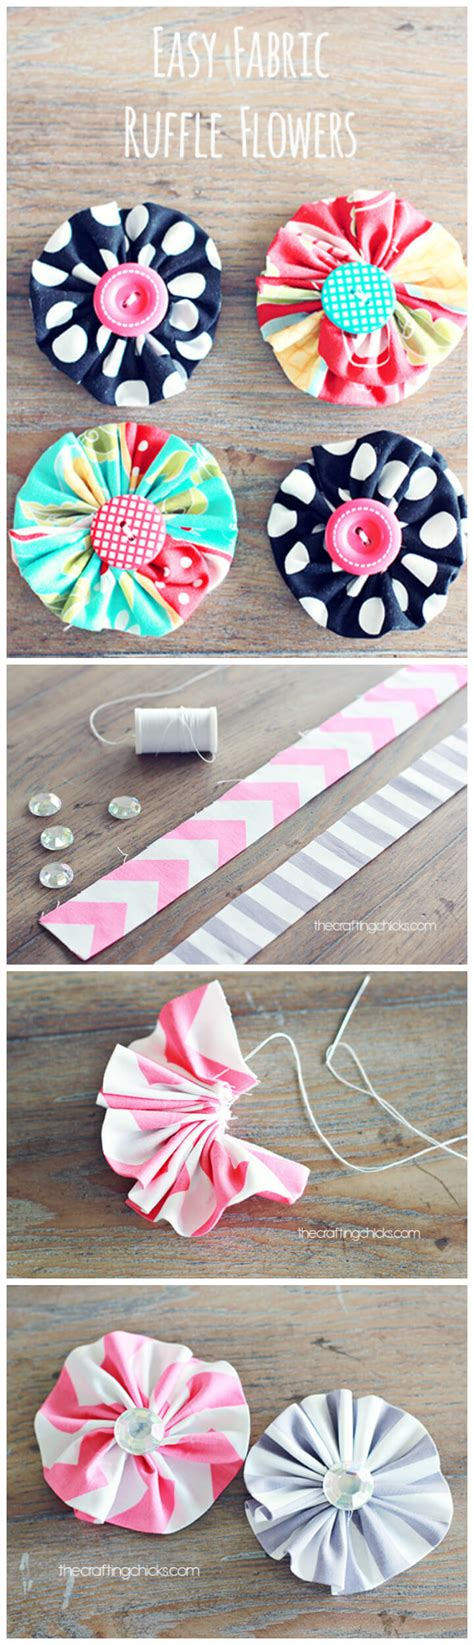 fabric crafts easy 50 easy fabric flowers tutorial make your own fabric